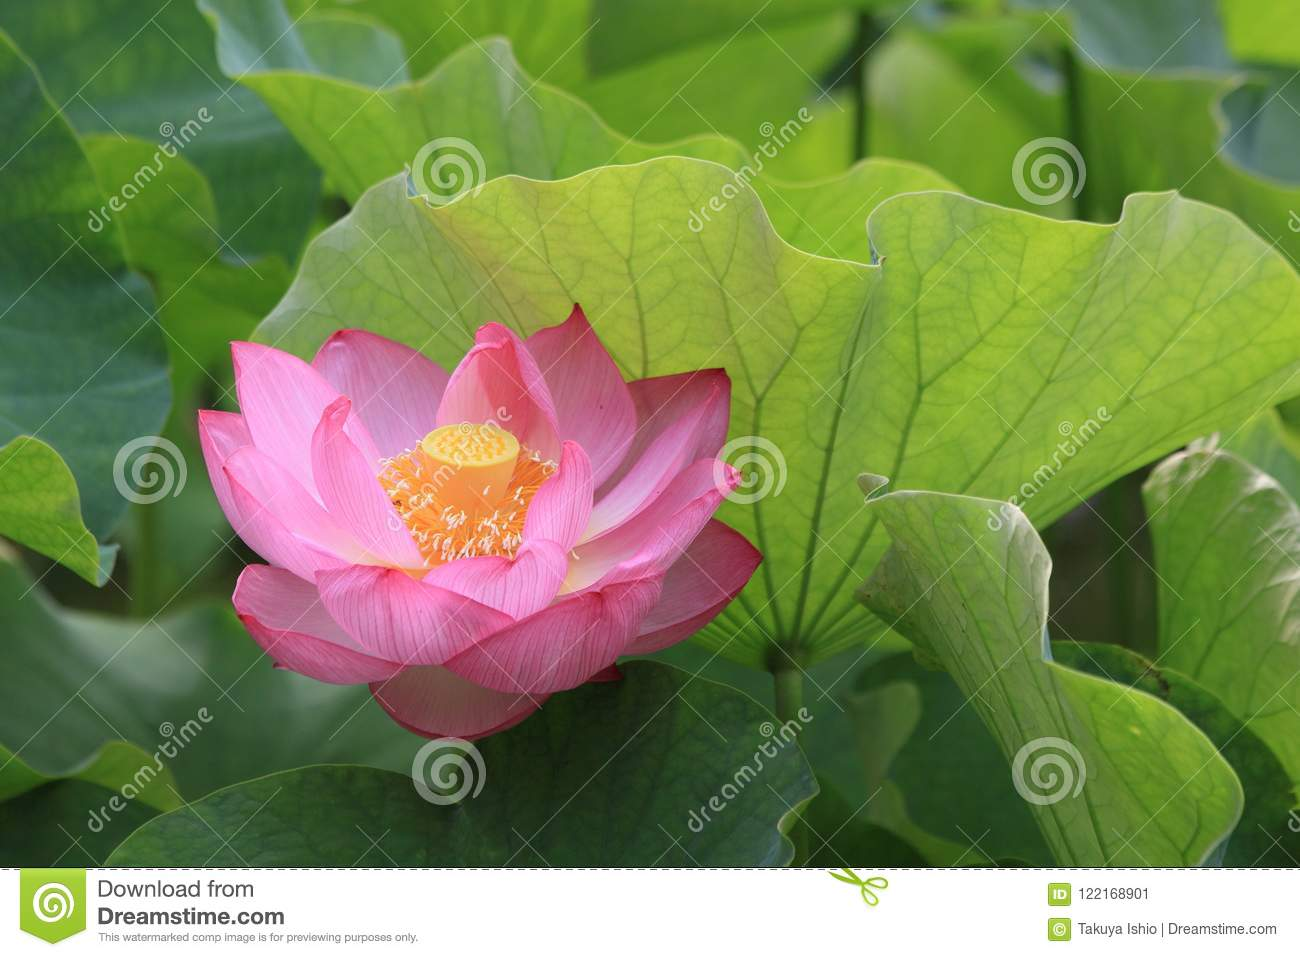 Lotus flower blossoms in a japanese garden stock image image of from june to july it is the best season to lotus flower blossoms in japan there are 1200 roots of 26 different types of flowering lotus in this garden mightylinksfo